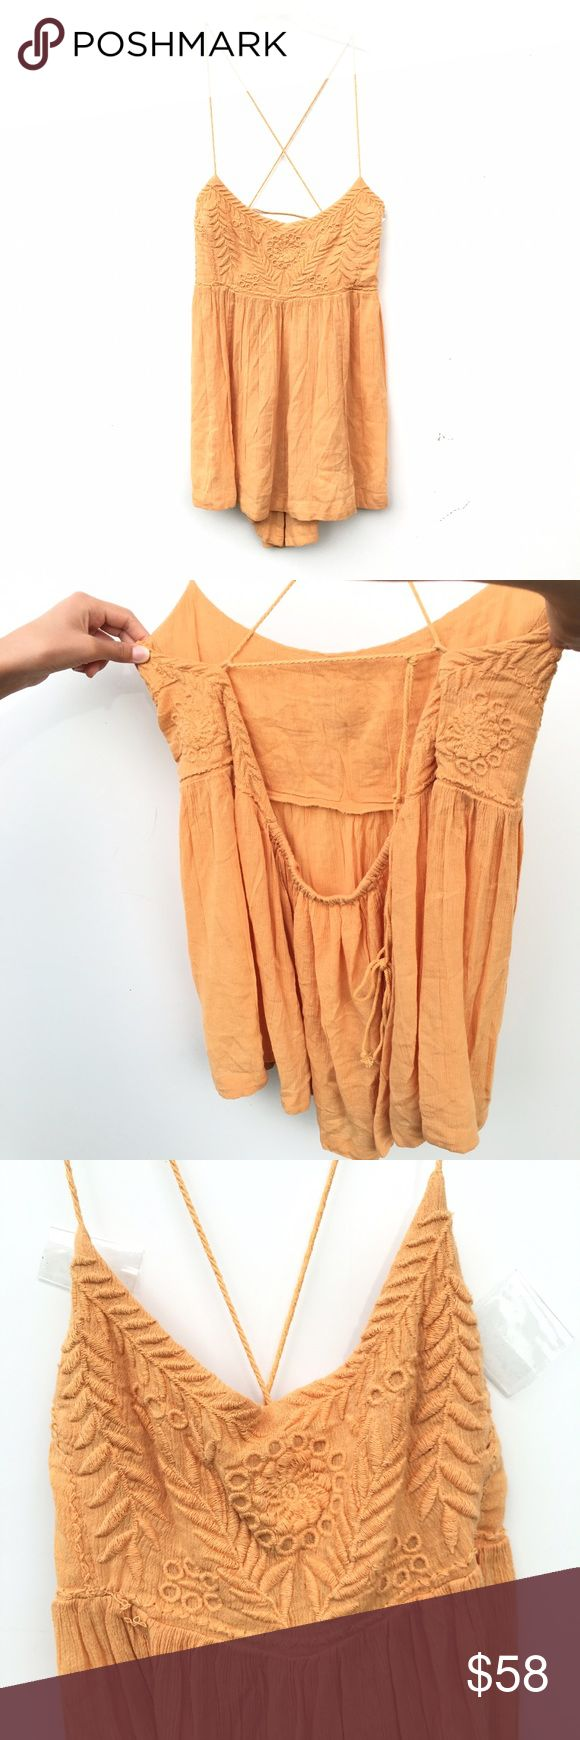 Free People Blackbird Top Brand new and without tags gold / orange-yellow Free People tank top. Straps are yarn like and cross over in back as shown. Straps are adjustable. Free People Tops Tank Tops